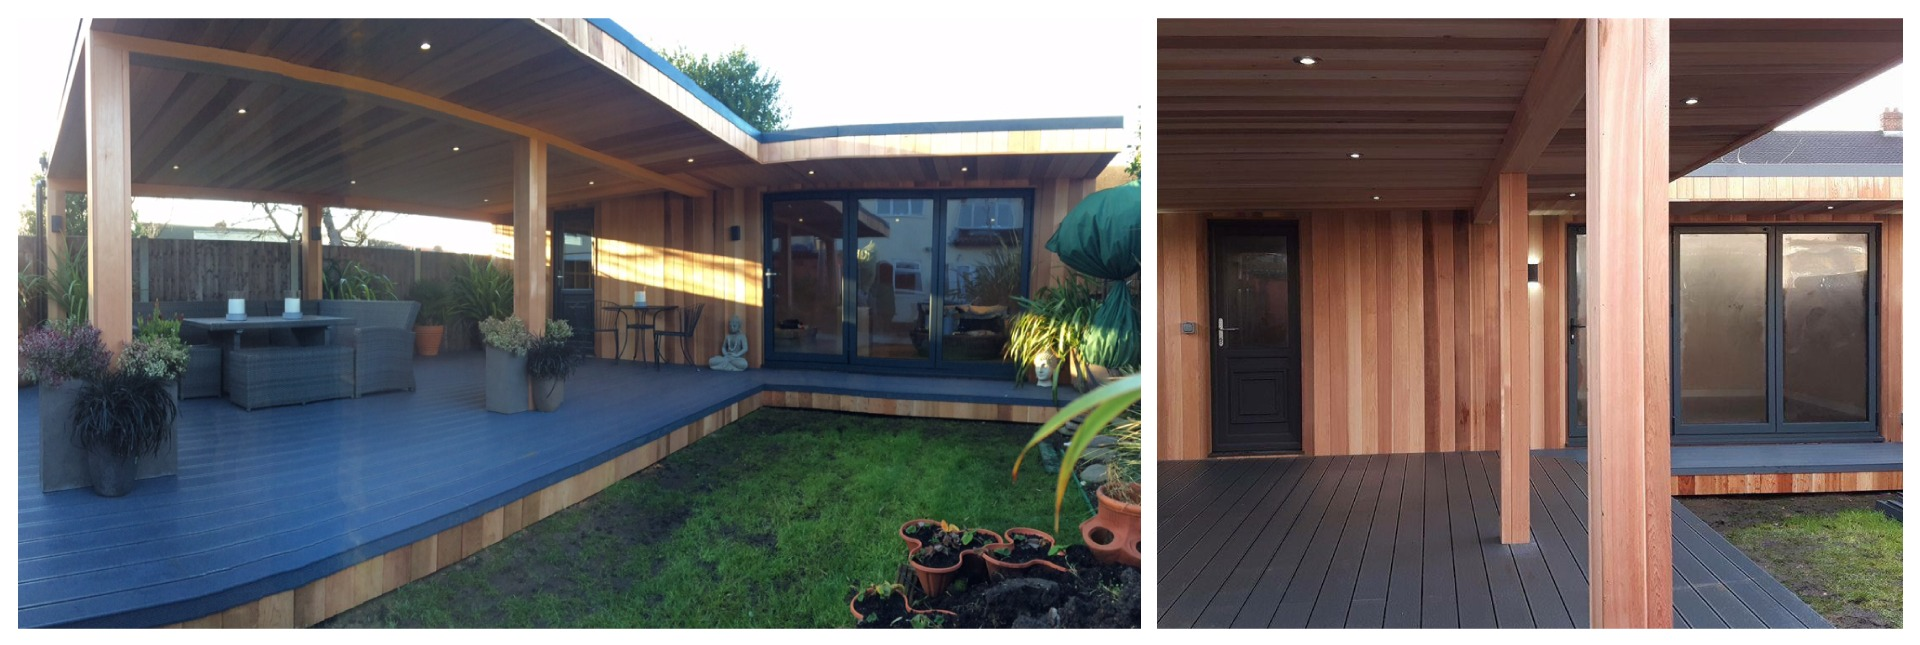 large garden room with large deck and canopy